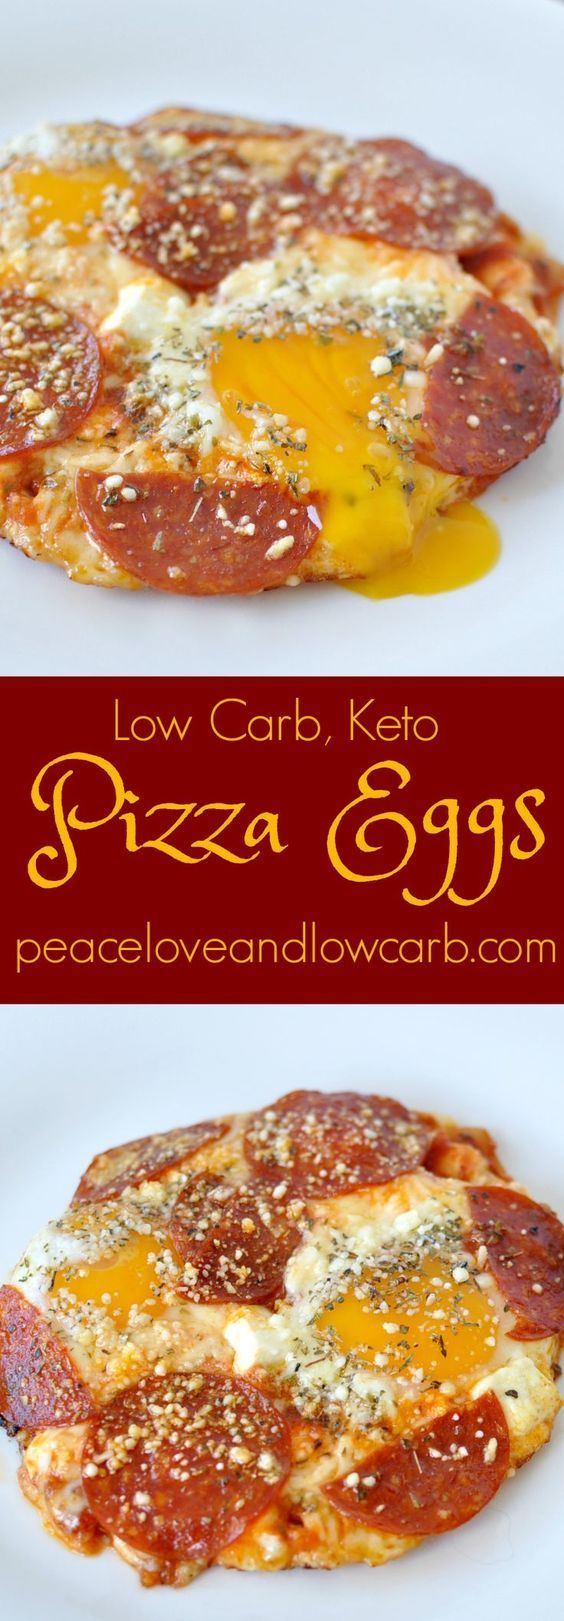 Pizza Eggs - Low Carb, Keto | Peace Love and Low Carb